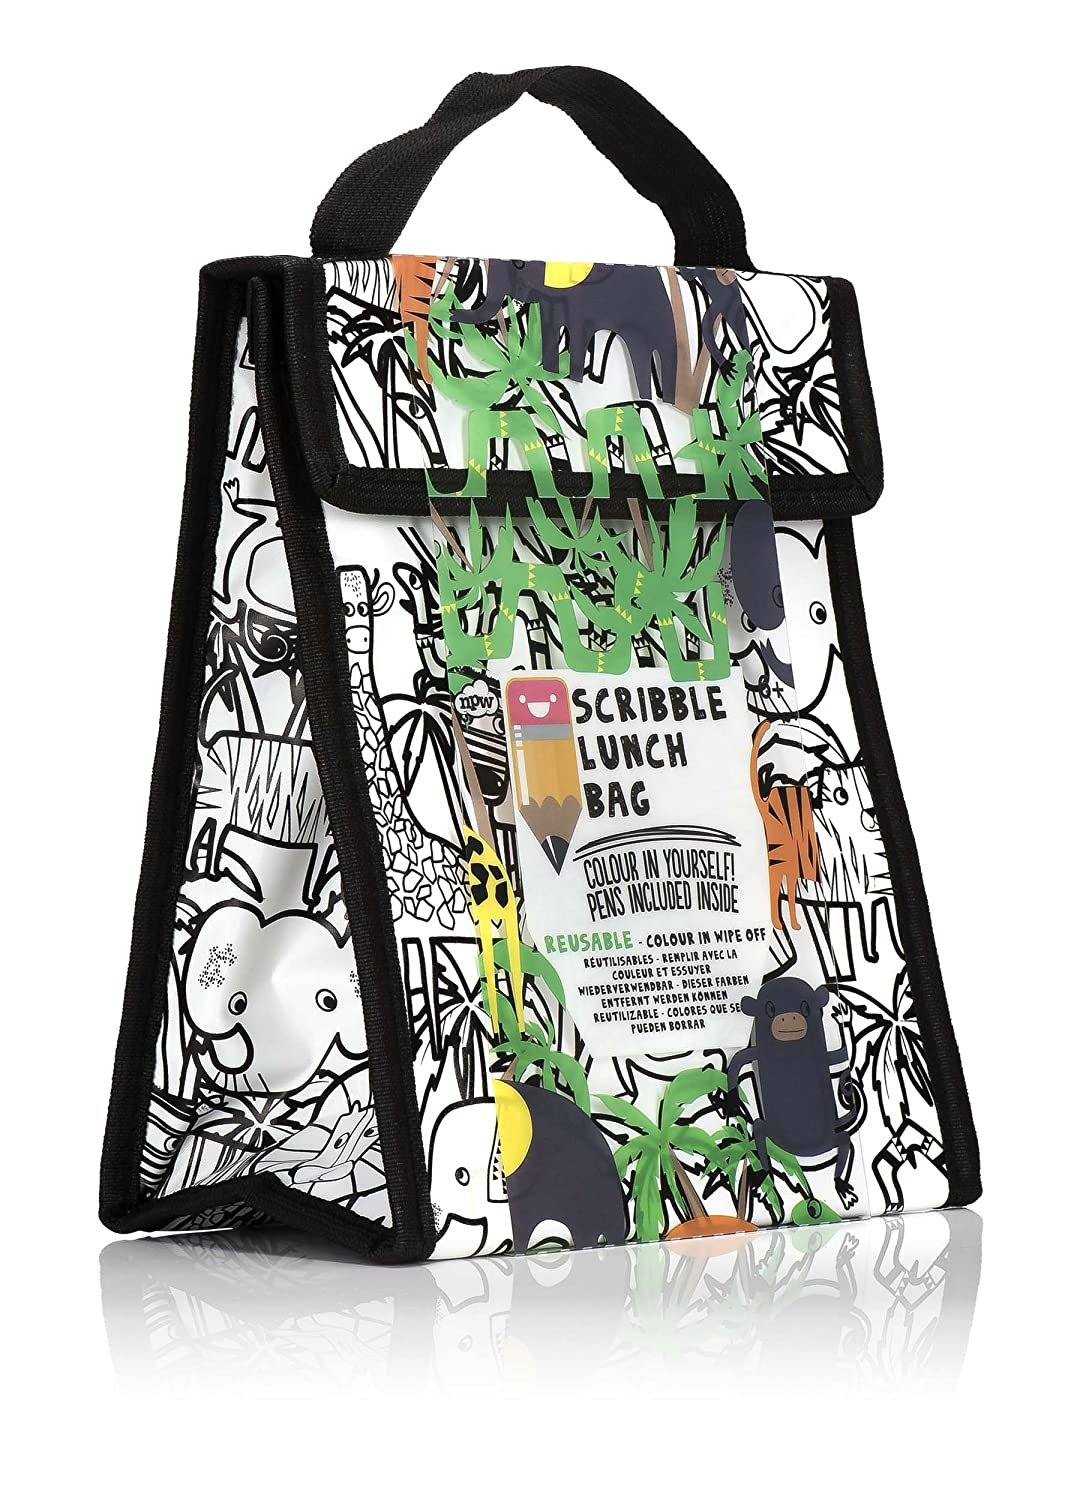 NPW NP31829 Wipe-Off Scribble Lunch Bag and Marker Set Medium Animals